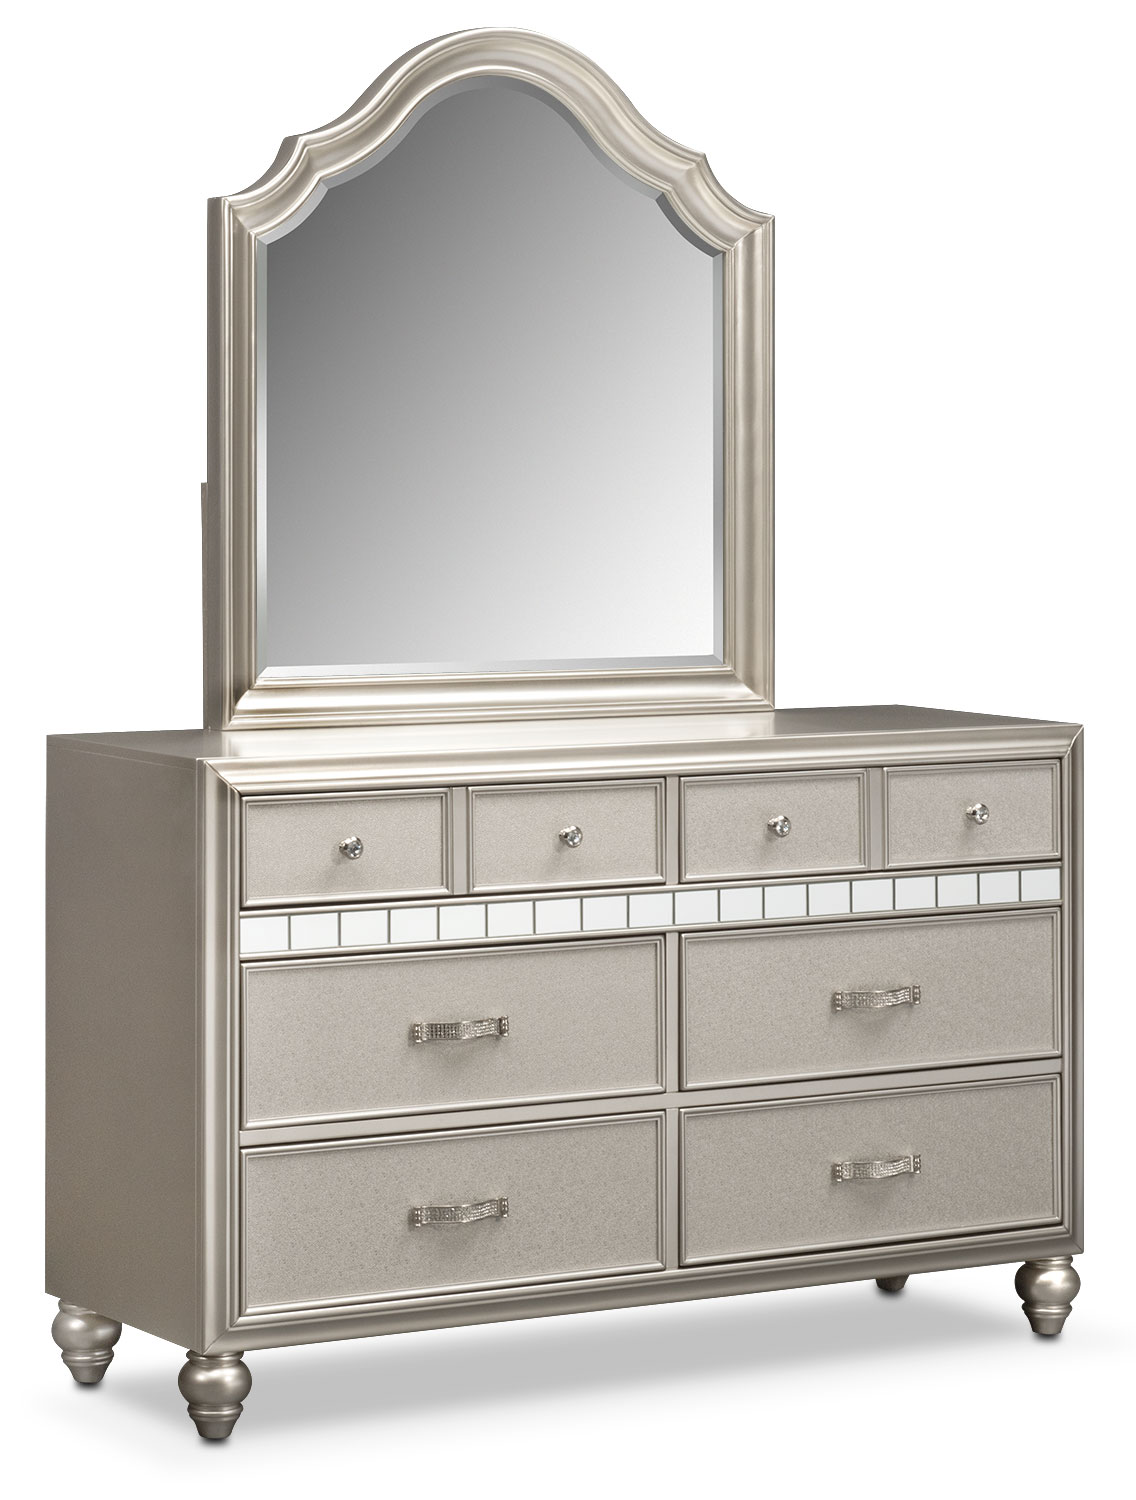 Serena Dresser and Mirror - Platinum